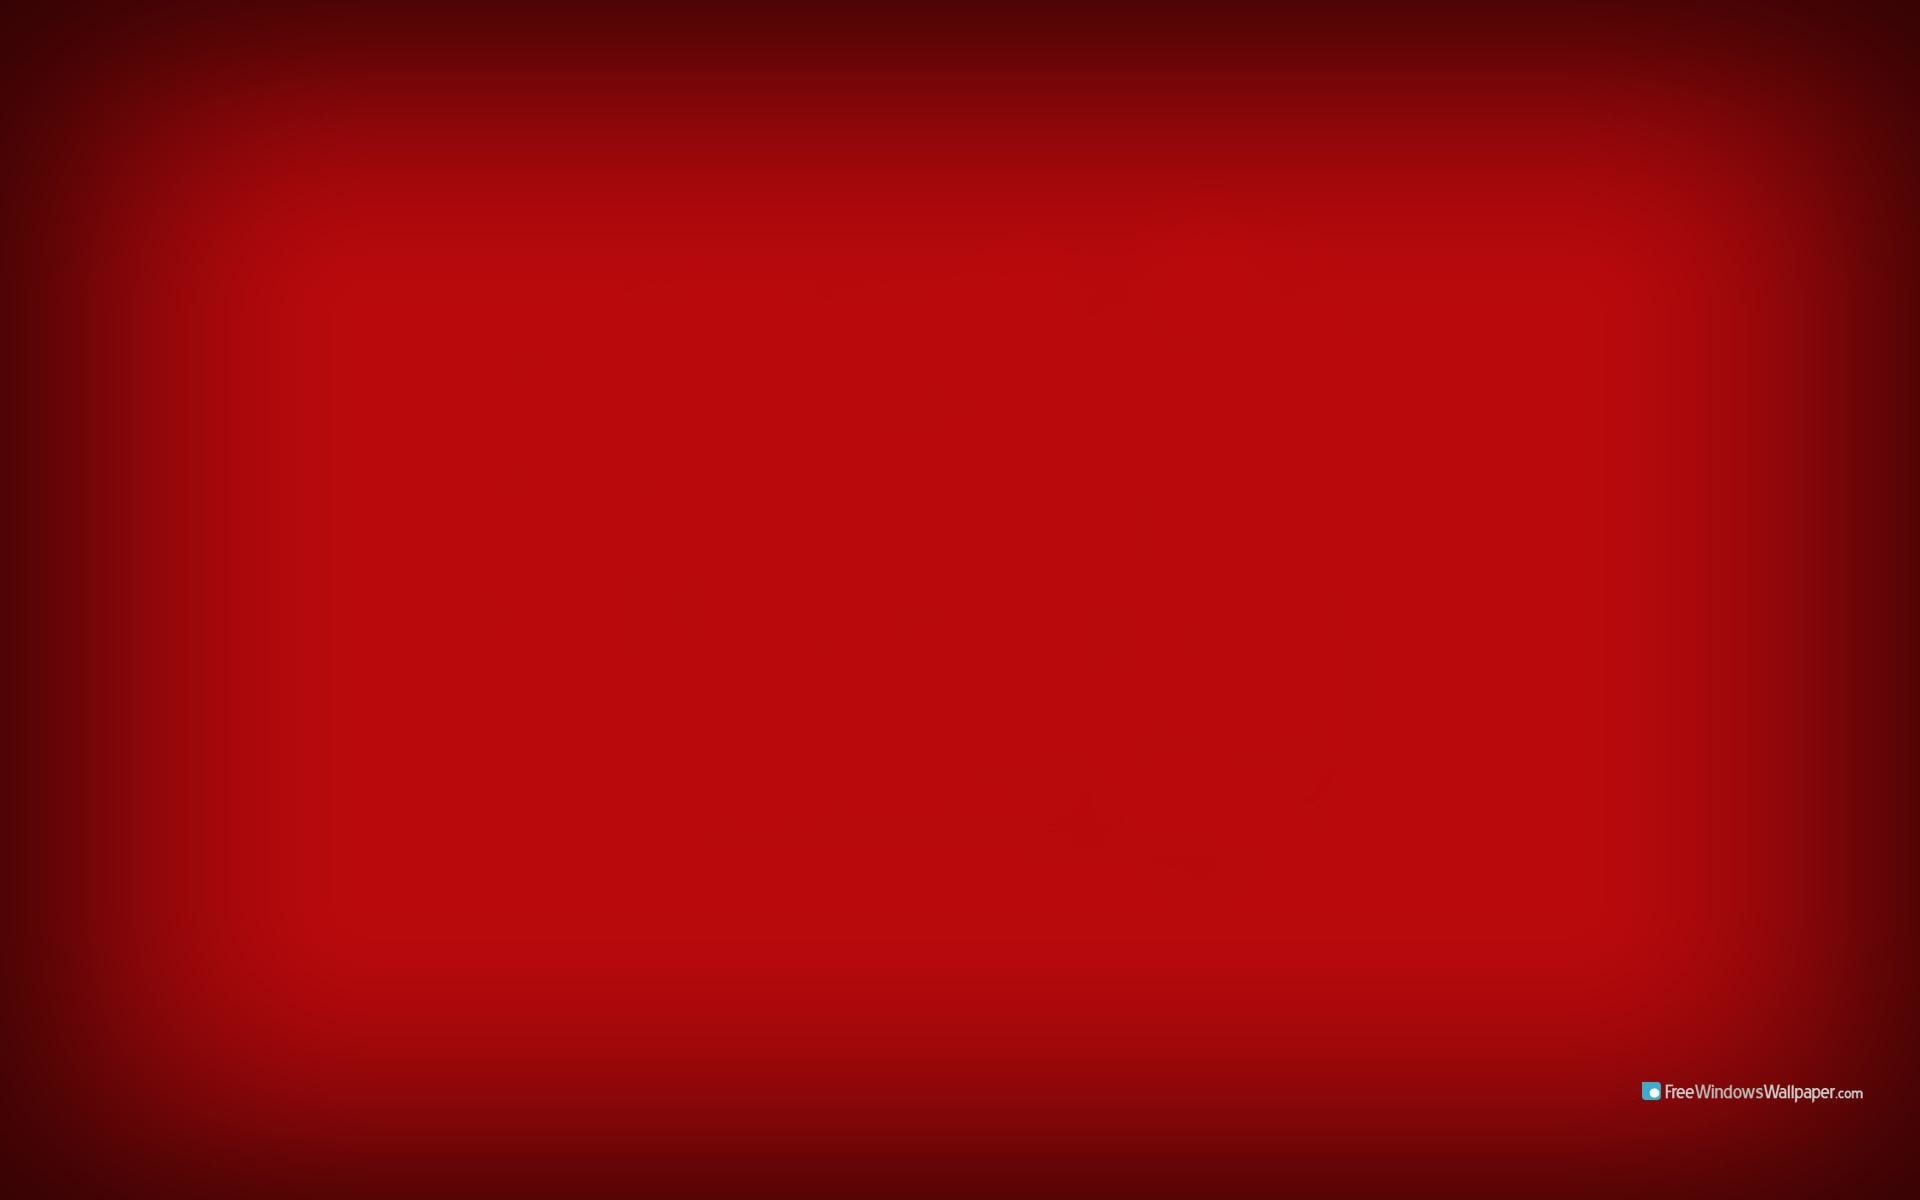   Red Computer Wallpaper   Solid Red Wallpaper